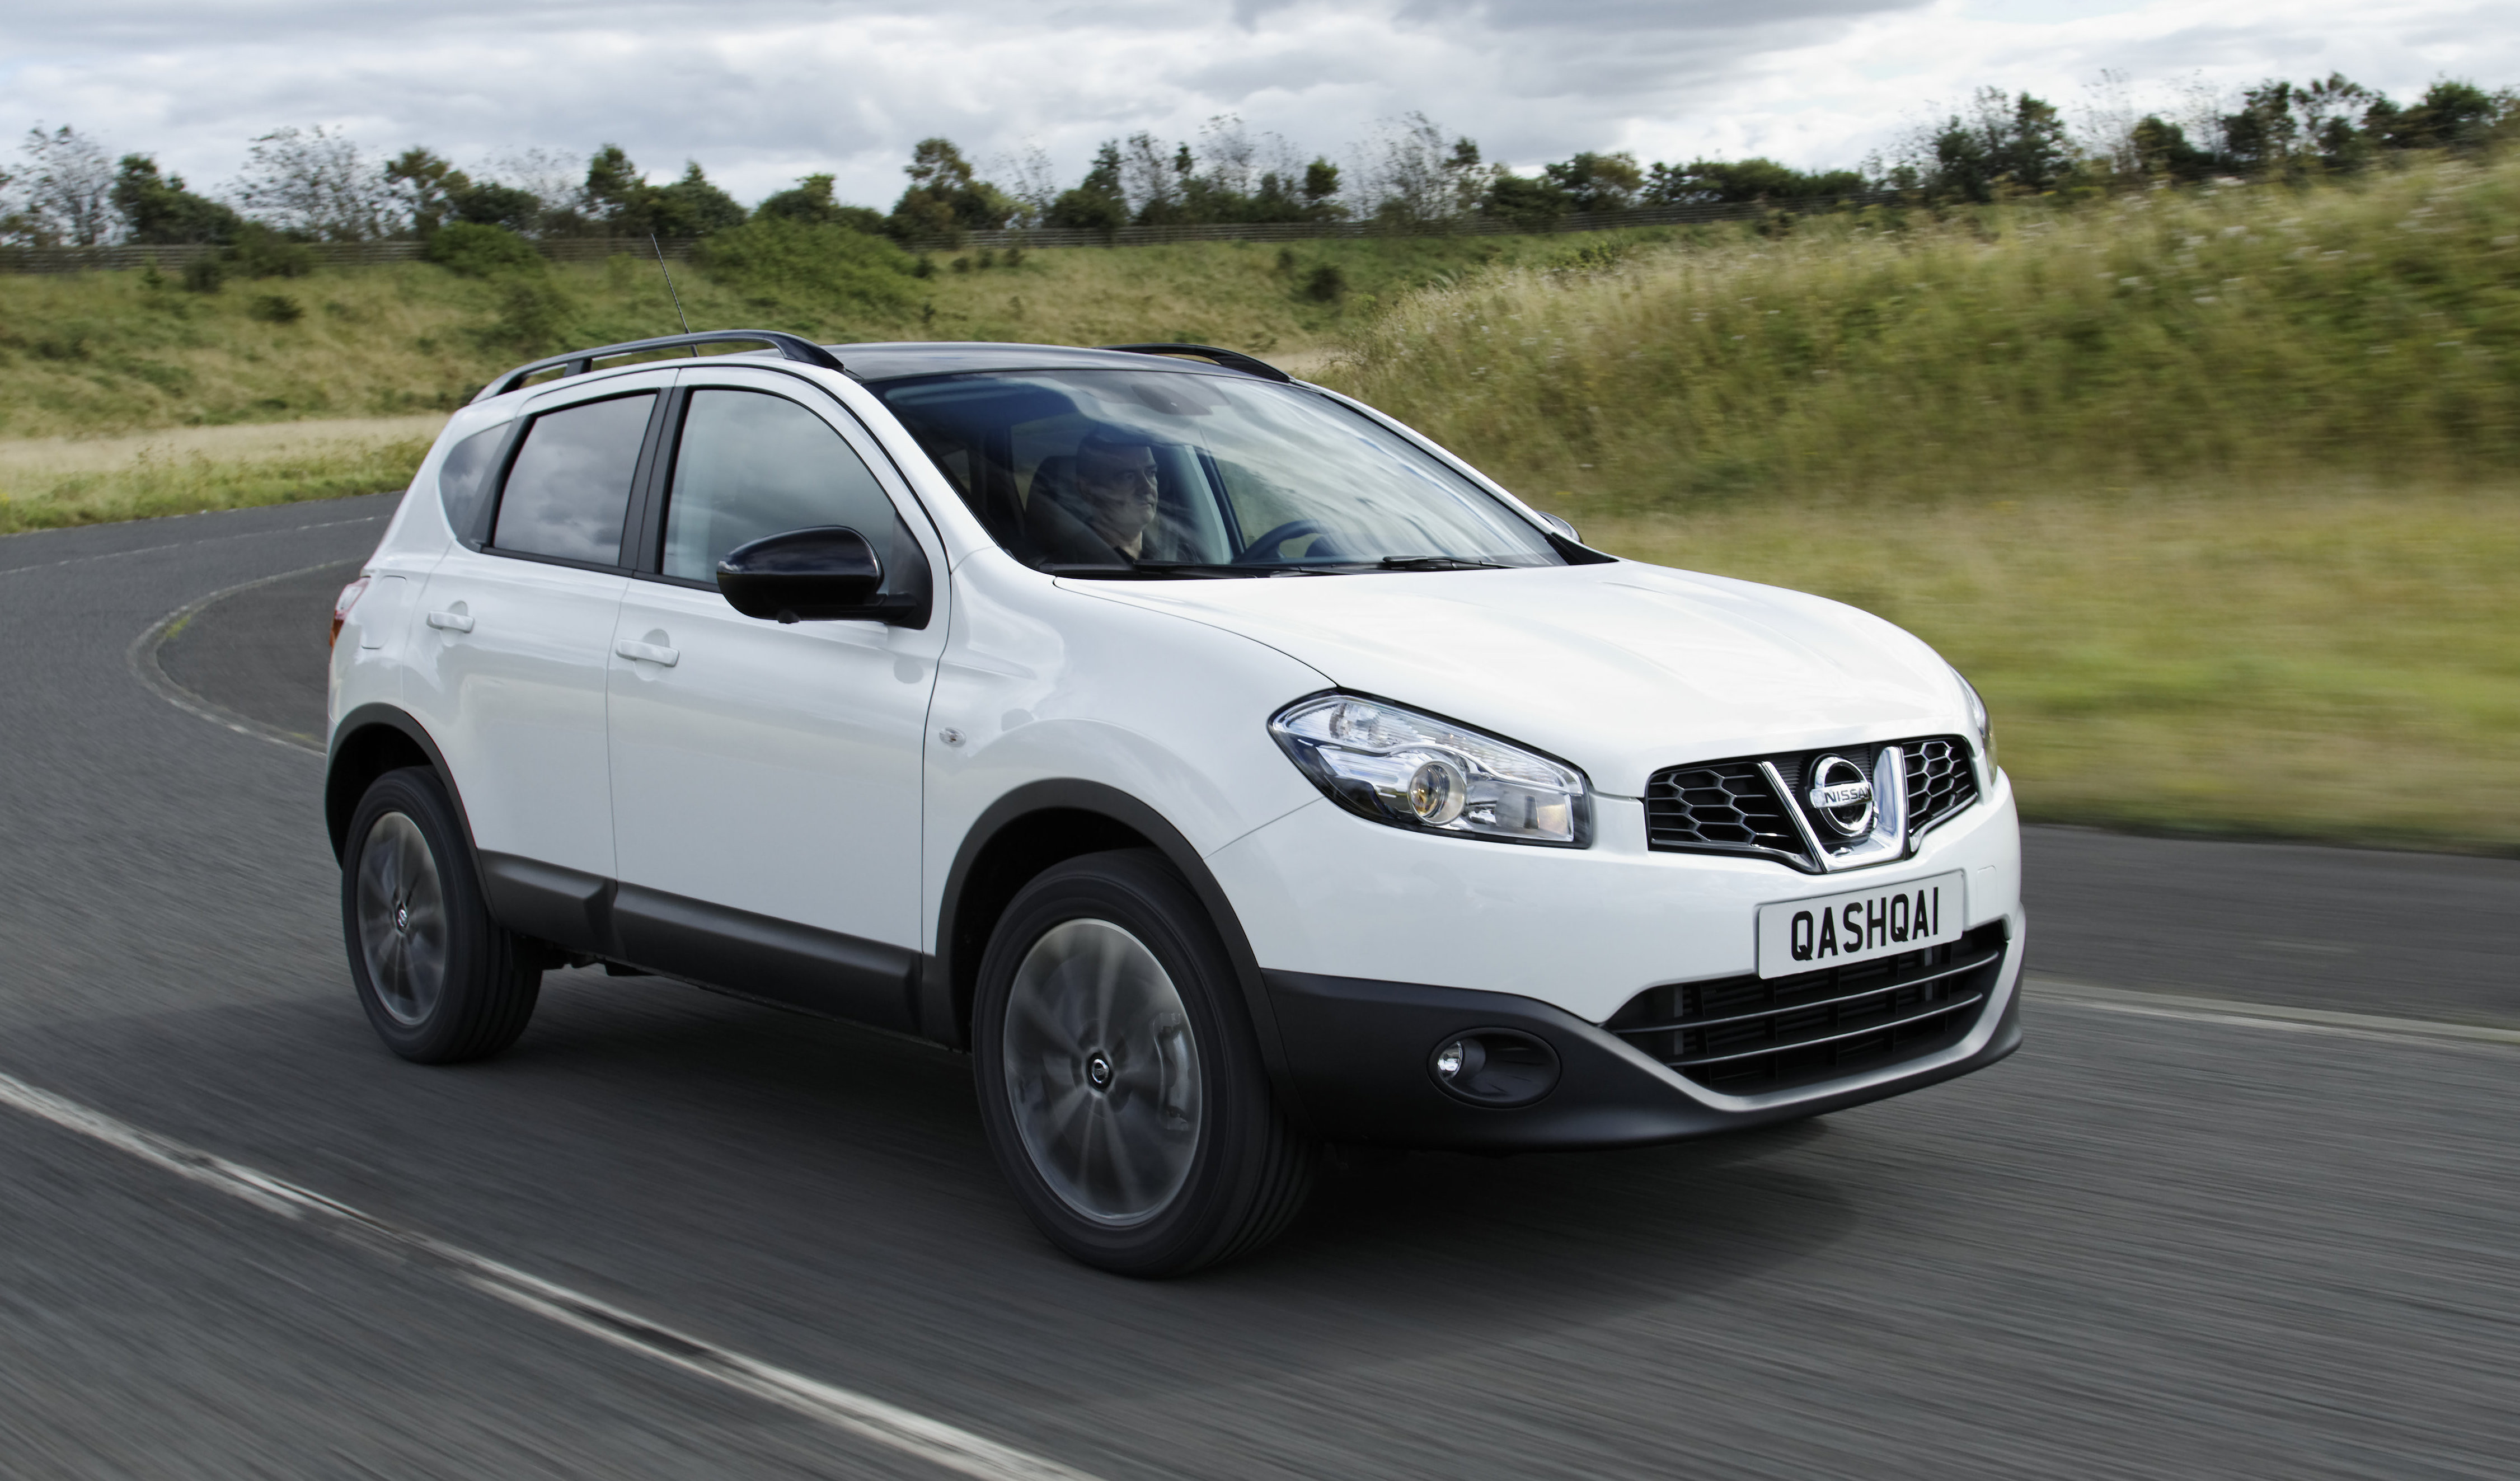 White Nissan Qashqai driving towards the right through countryside